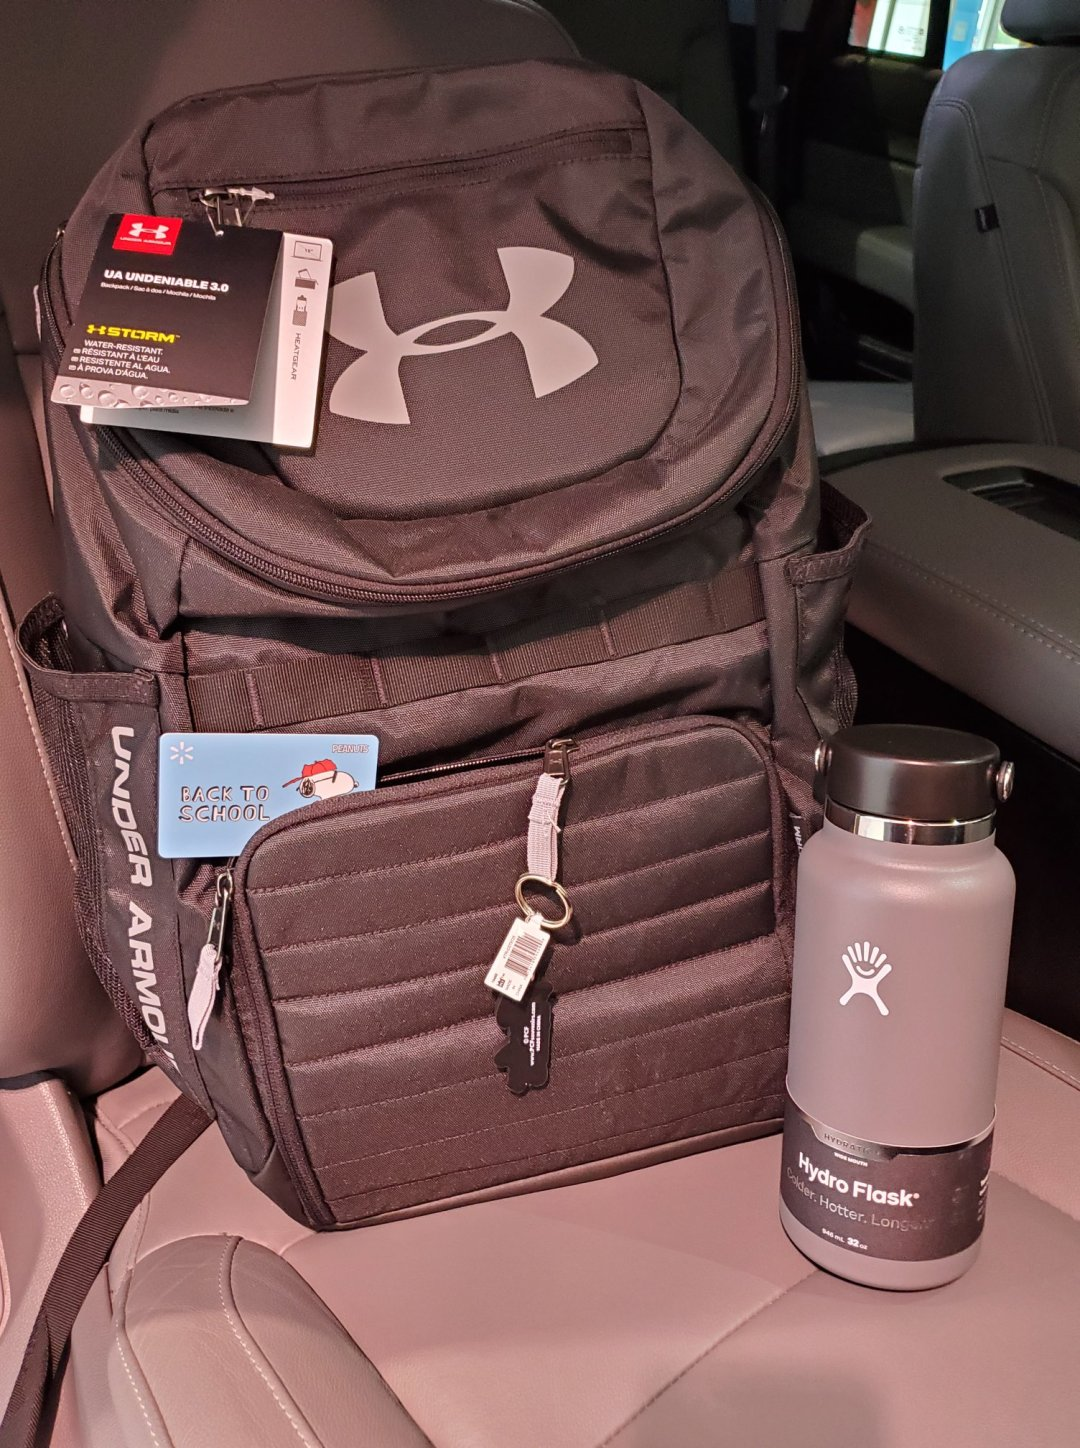 instantly-win-an-under-armour-gift-card